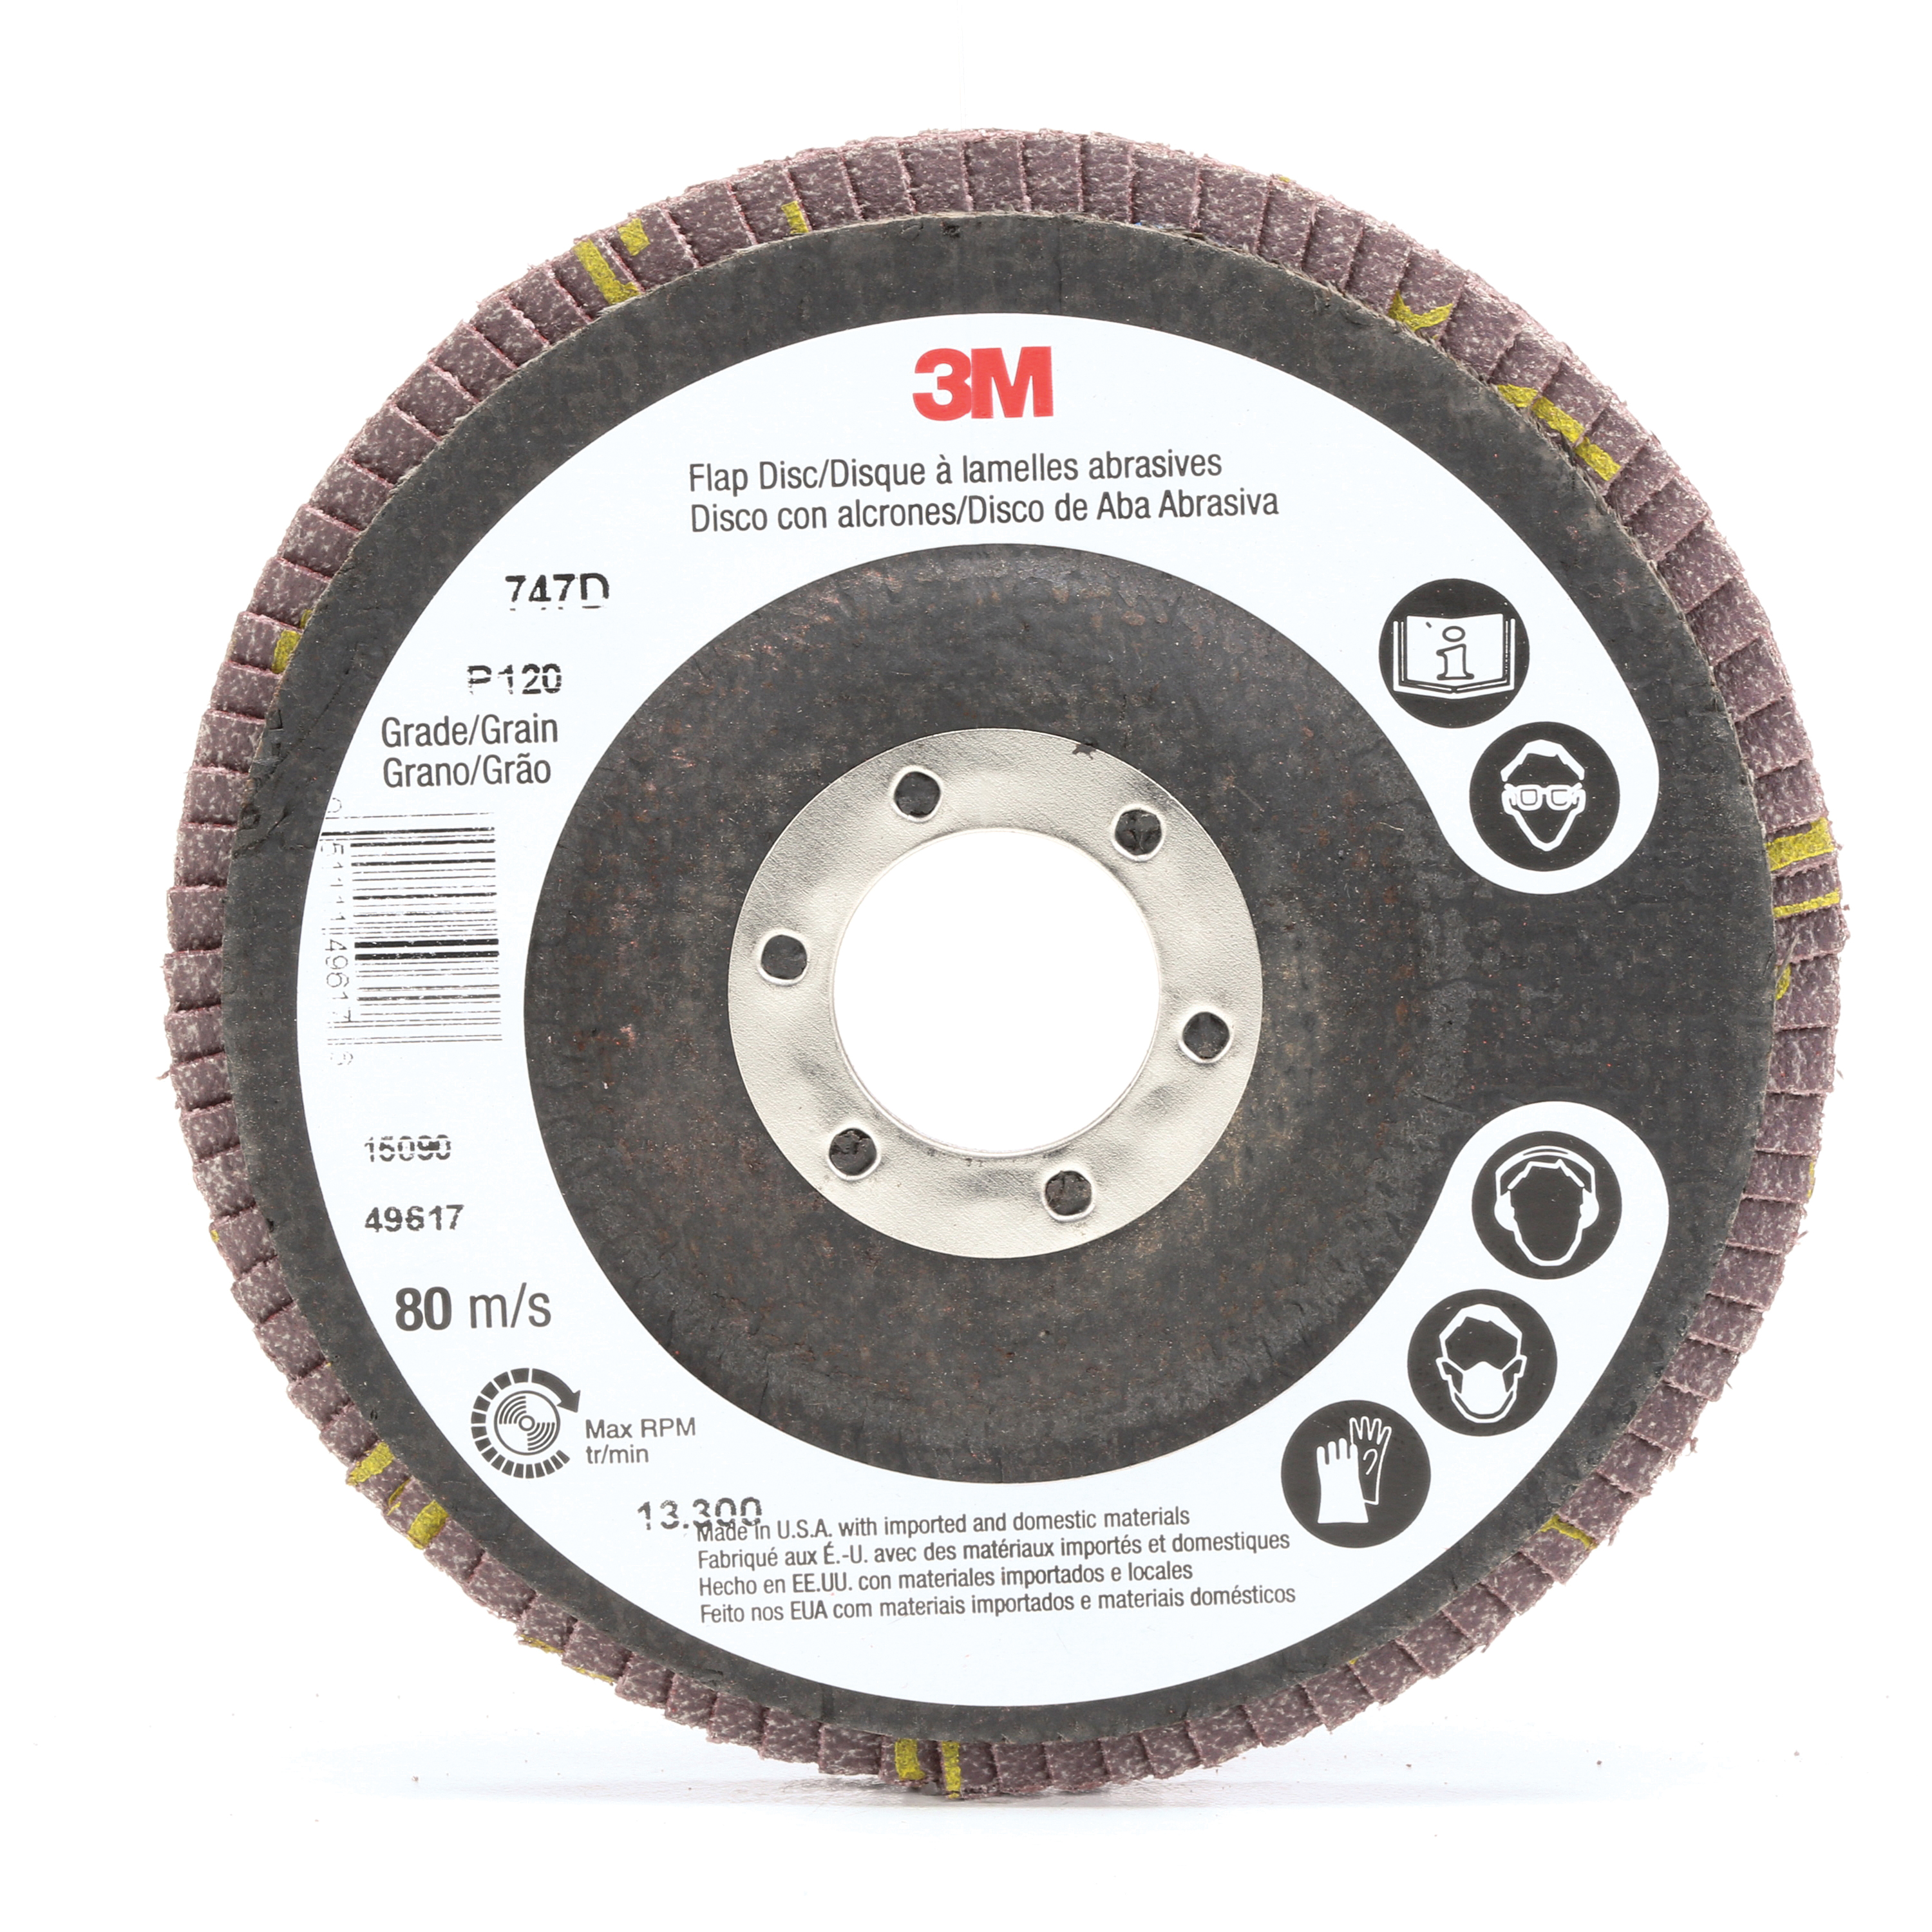 3M™ 051111-49617 Close Quick-Change Coated Abrasive Flap Disc, 4-1/2 in Dia, 7/8 in Center Hole, P120 Grit, Fine Grade, Ceramic Abrasive, Type 27 Disc